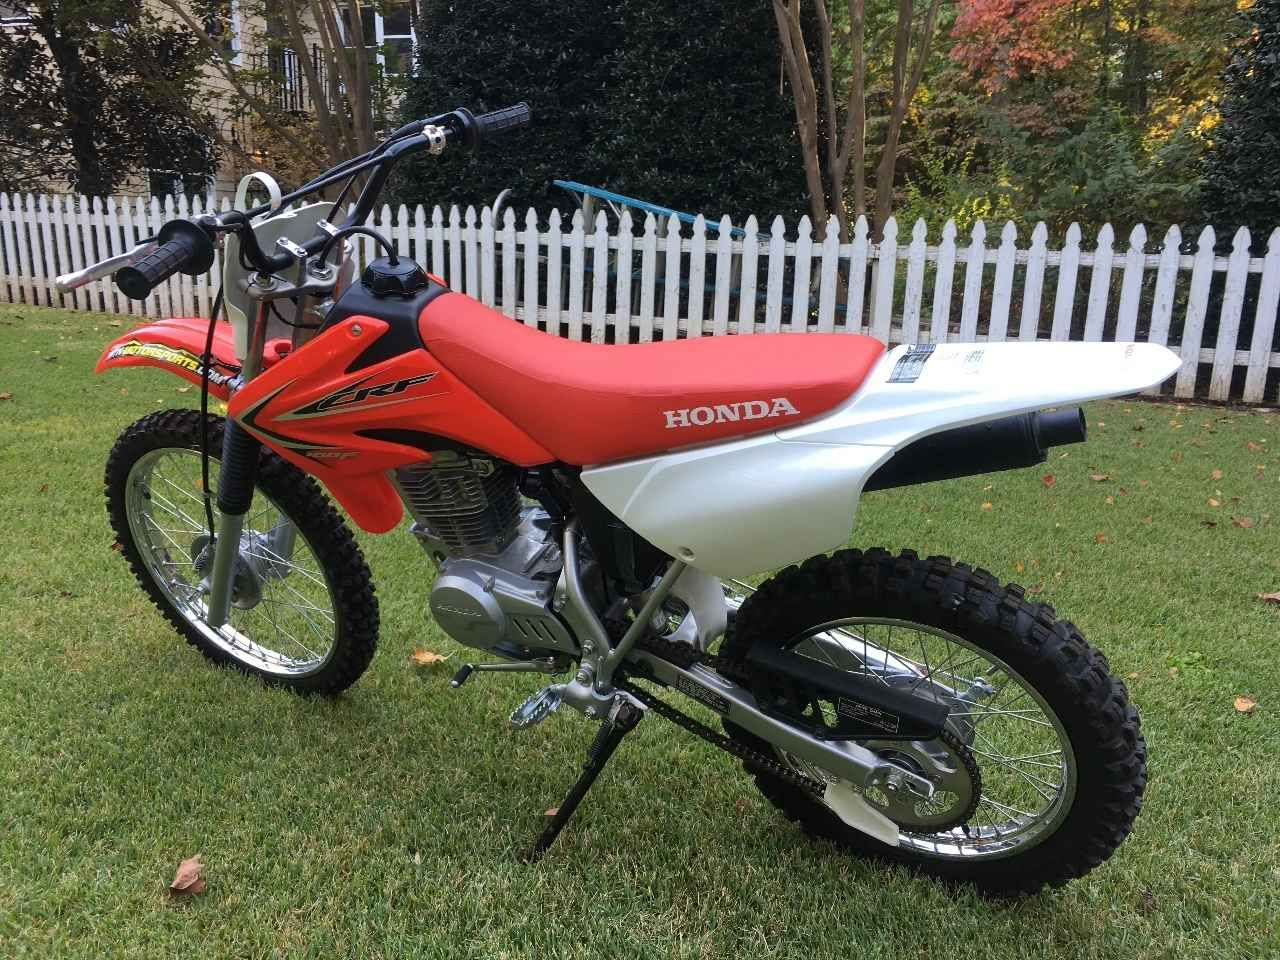 Used 2012 Honda Crf 100f Motorcycles For Sale In Georgia Ga 2012 Honda Crf100f Less Than 5 Hours Ride Time Bought New Motorcycles For Sale Motorcycle Honda